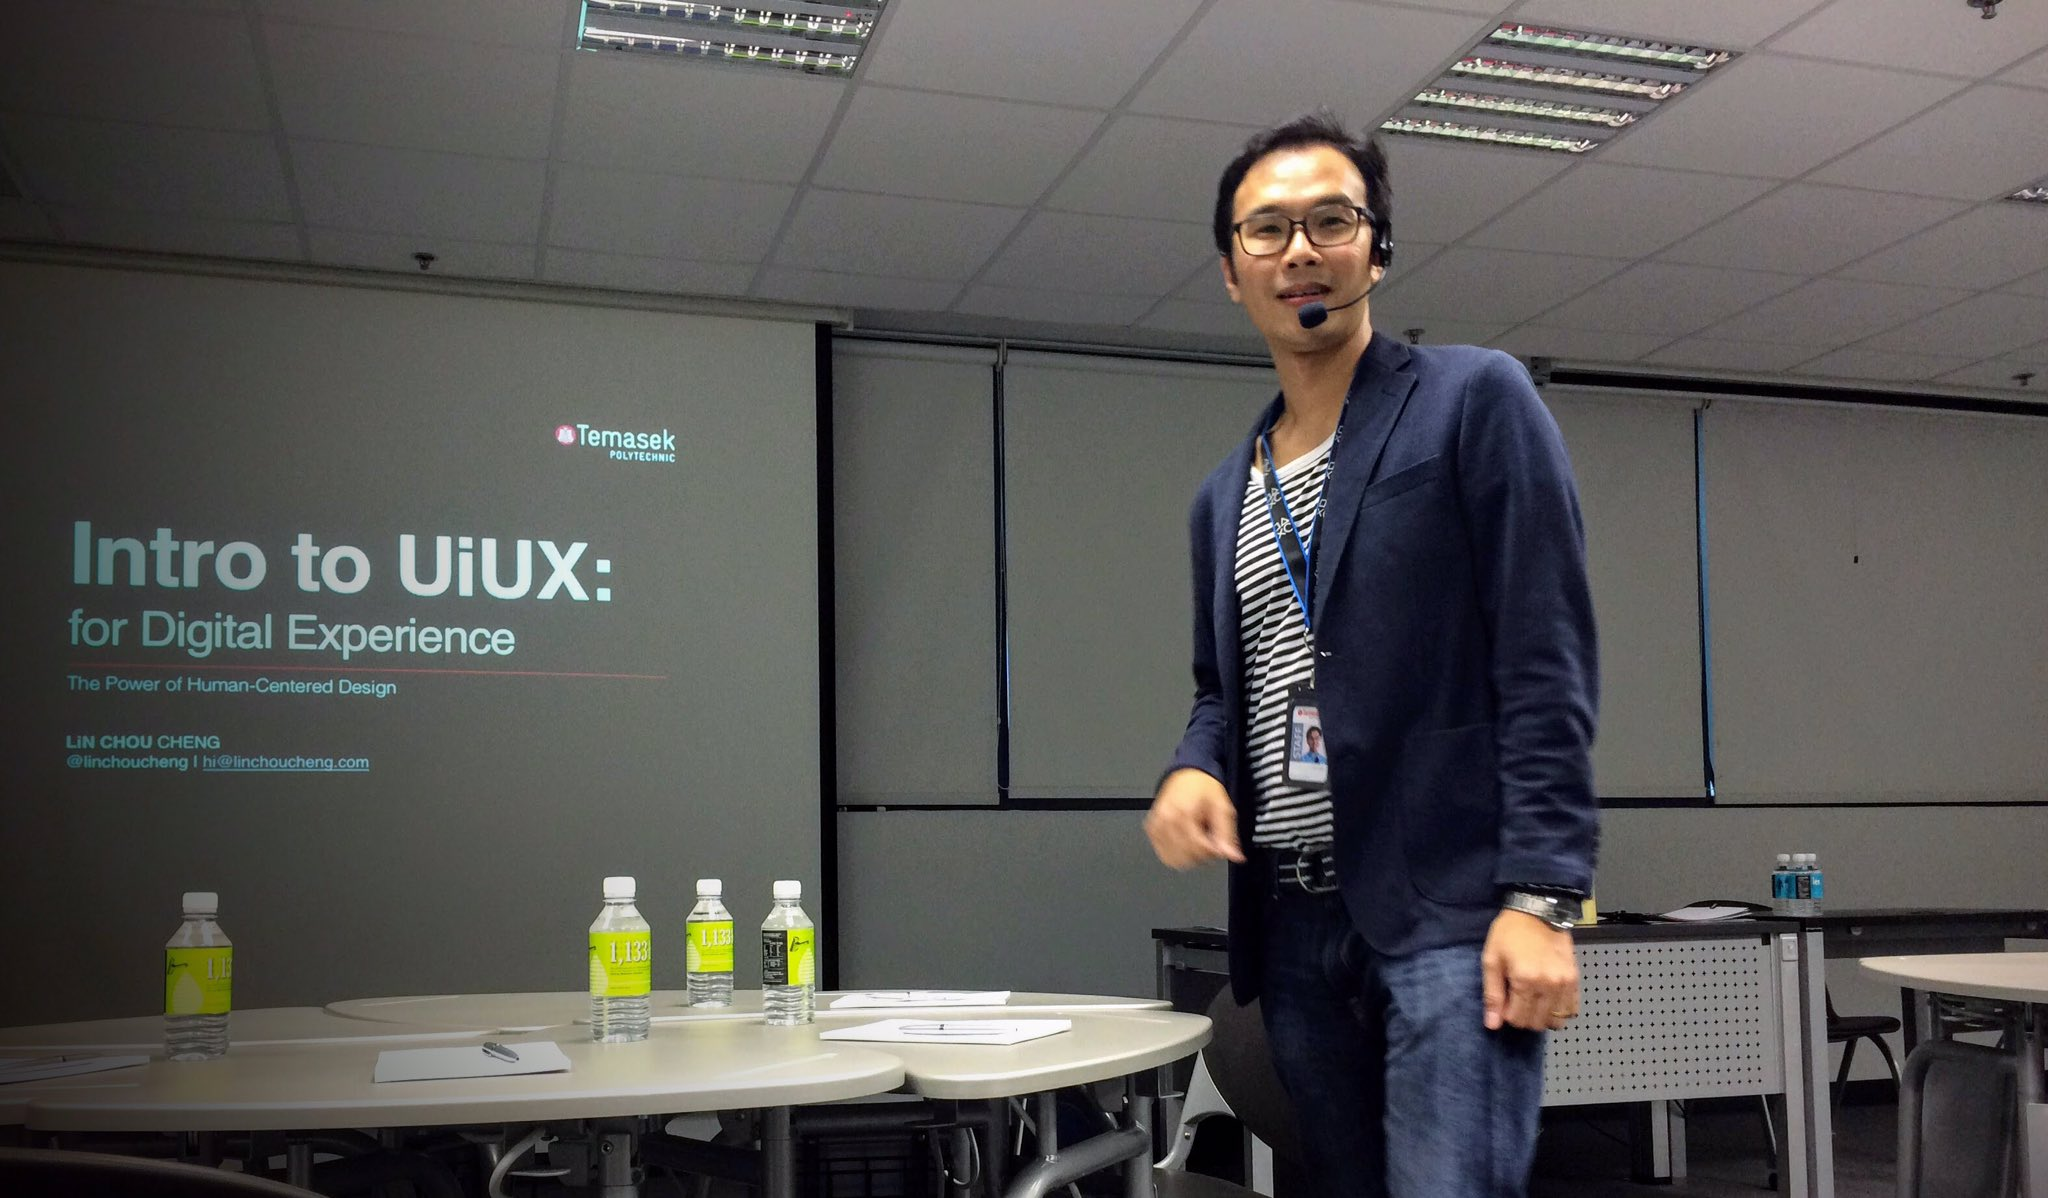 UiUX, Human Centered Design, Lin Chou Cheng